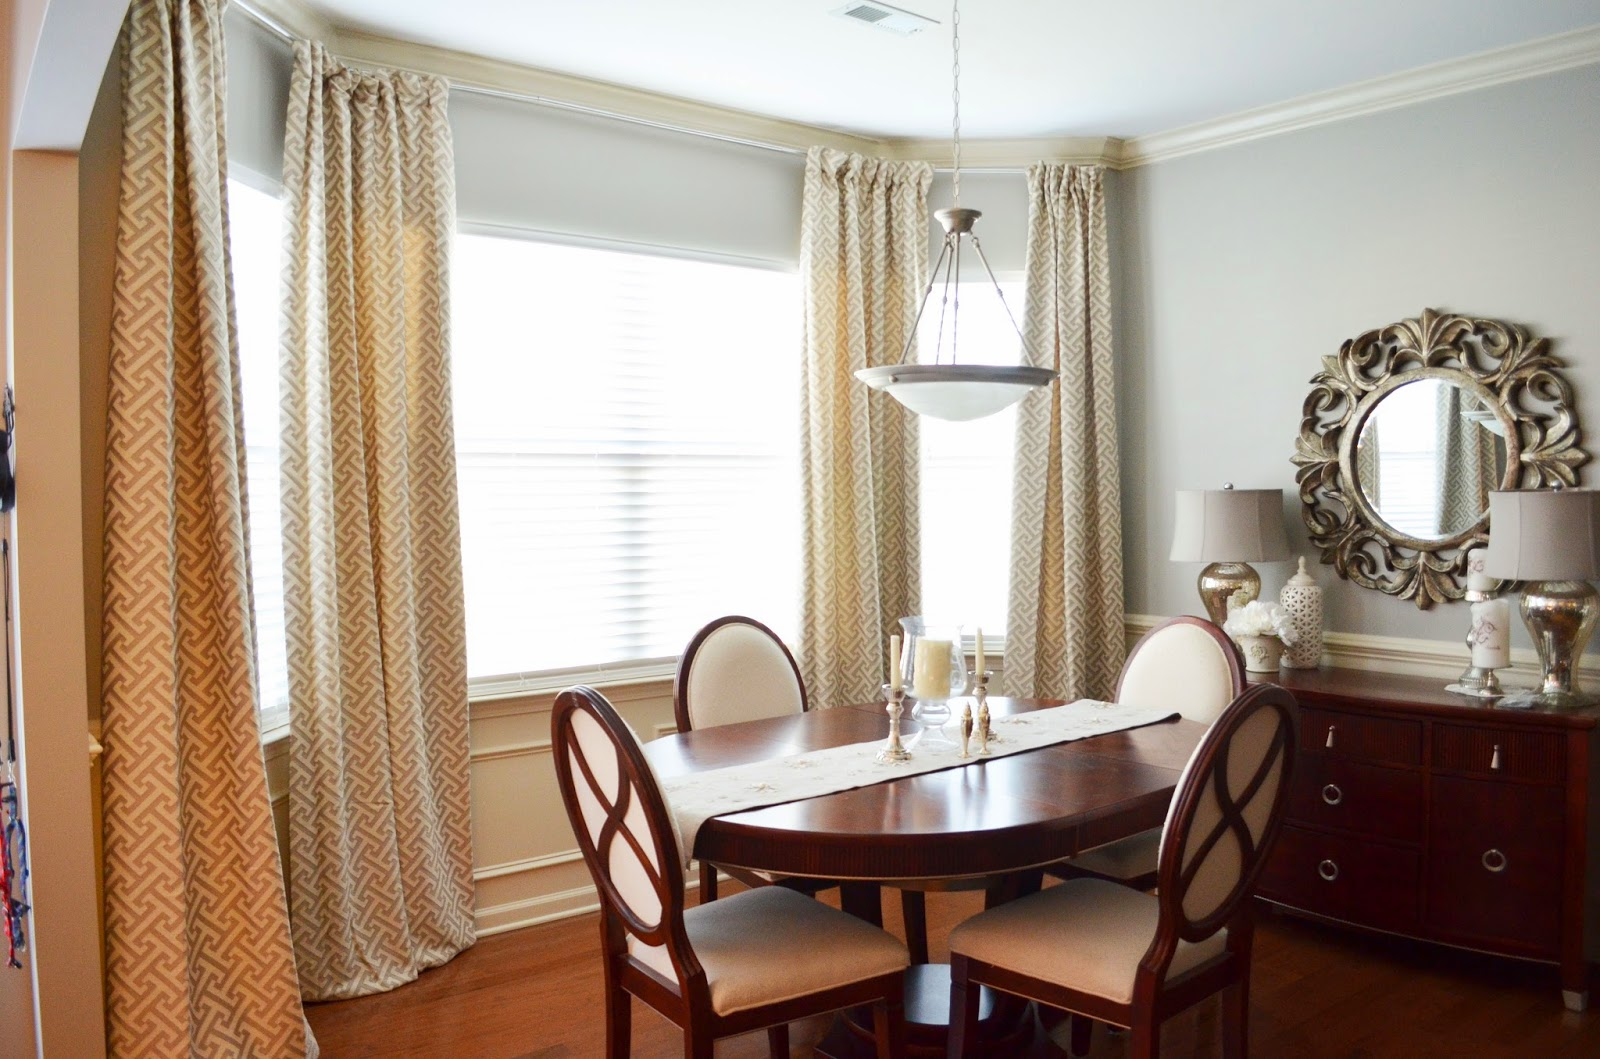 Dining Room Lighting Options